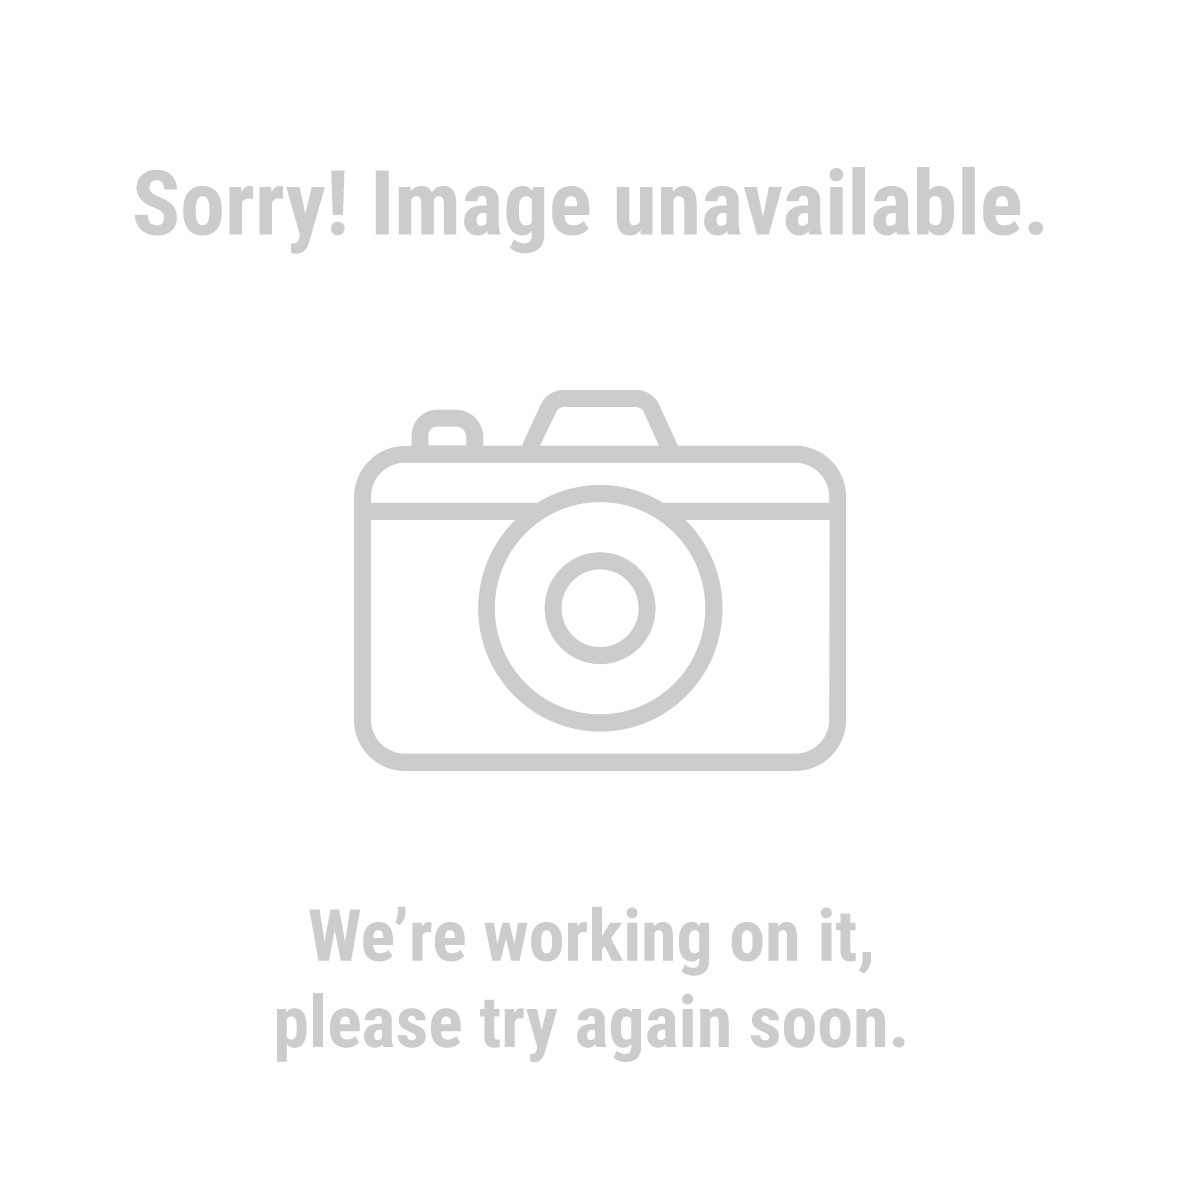 10 Piece 1/2 in. Drive Metric Impact Socket Set